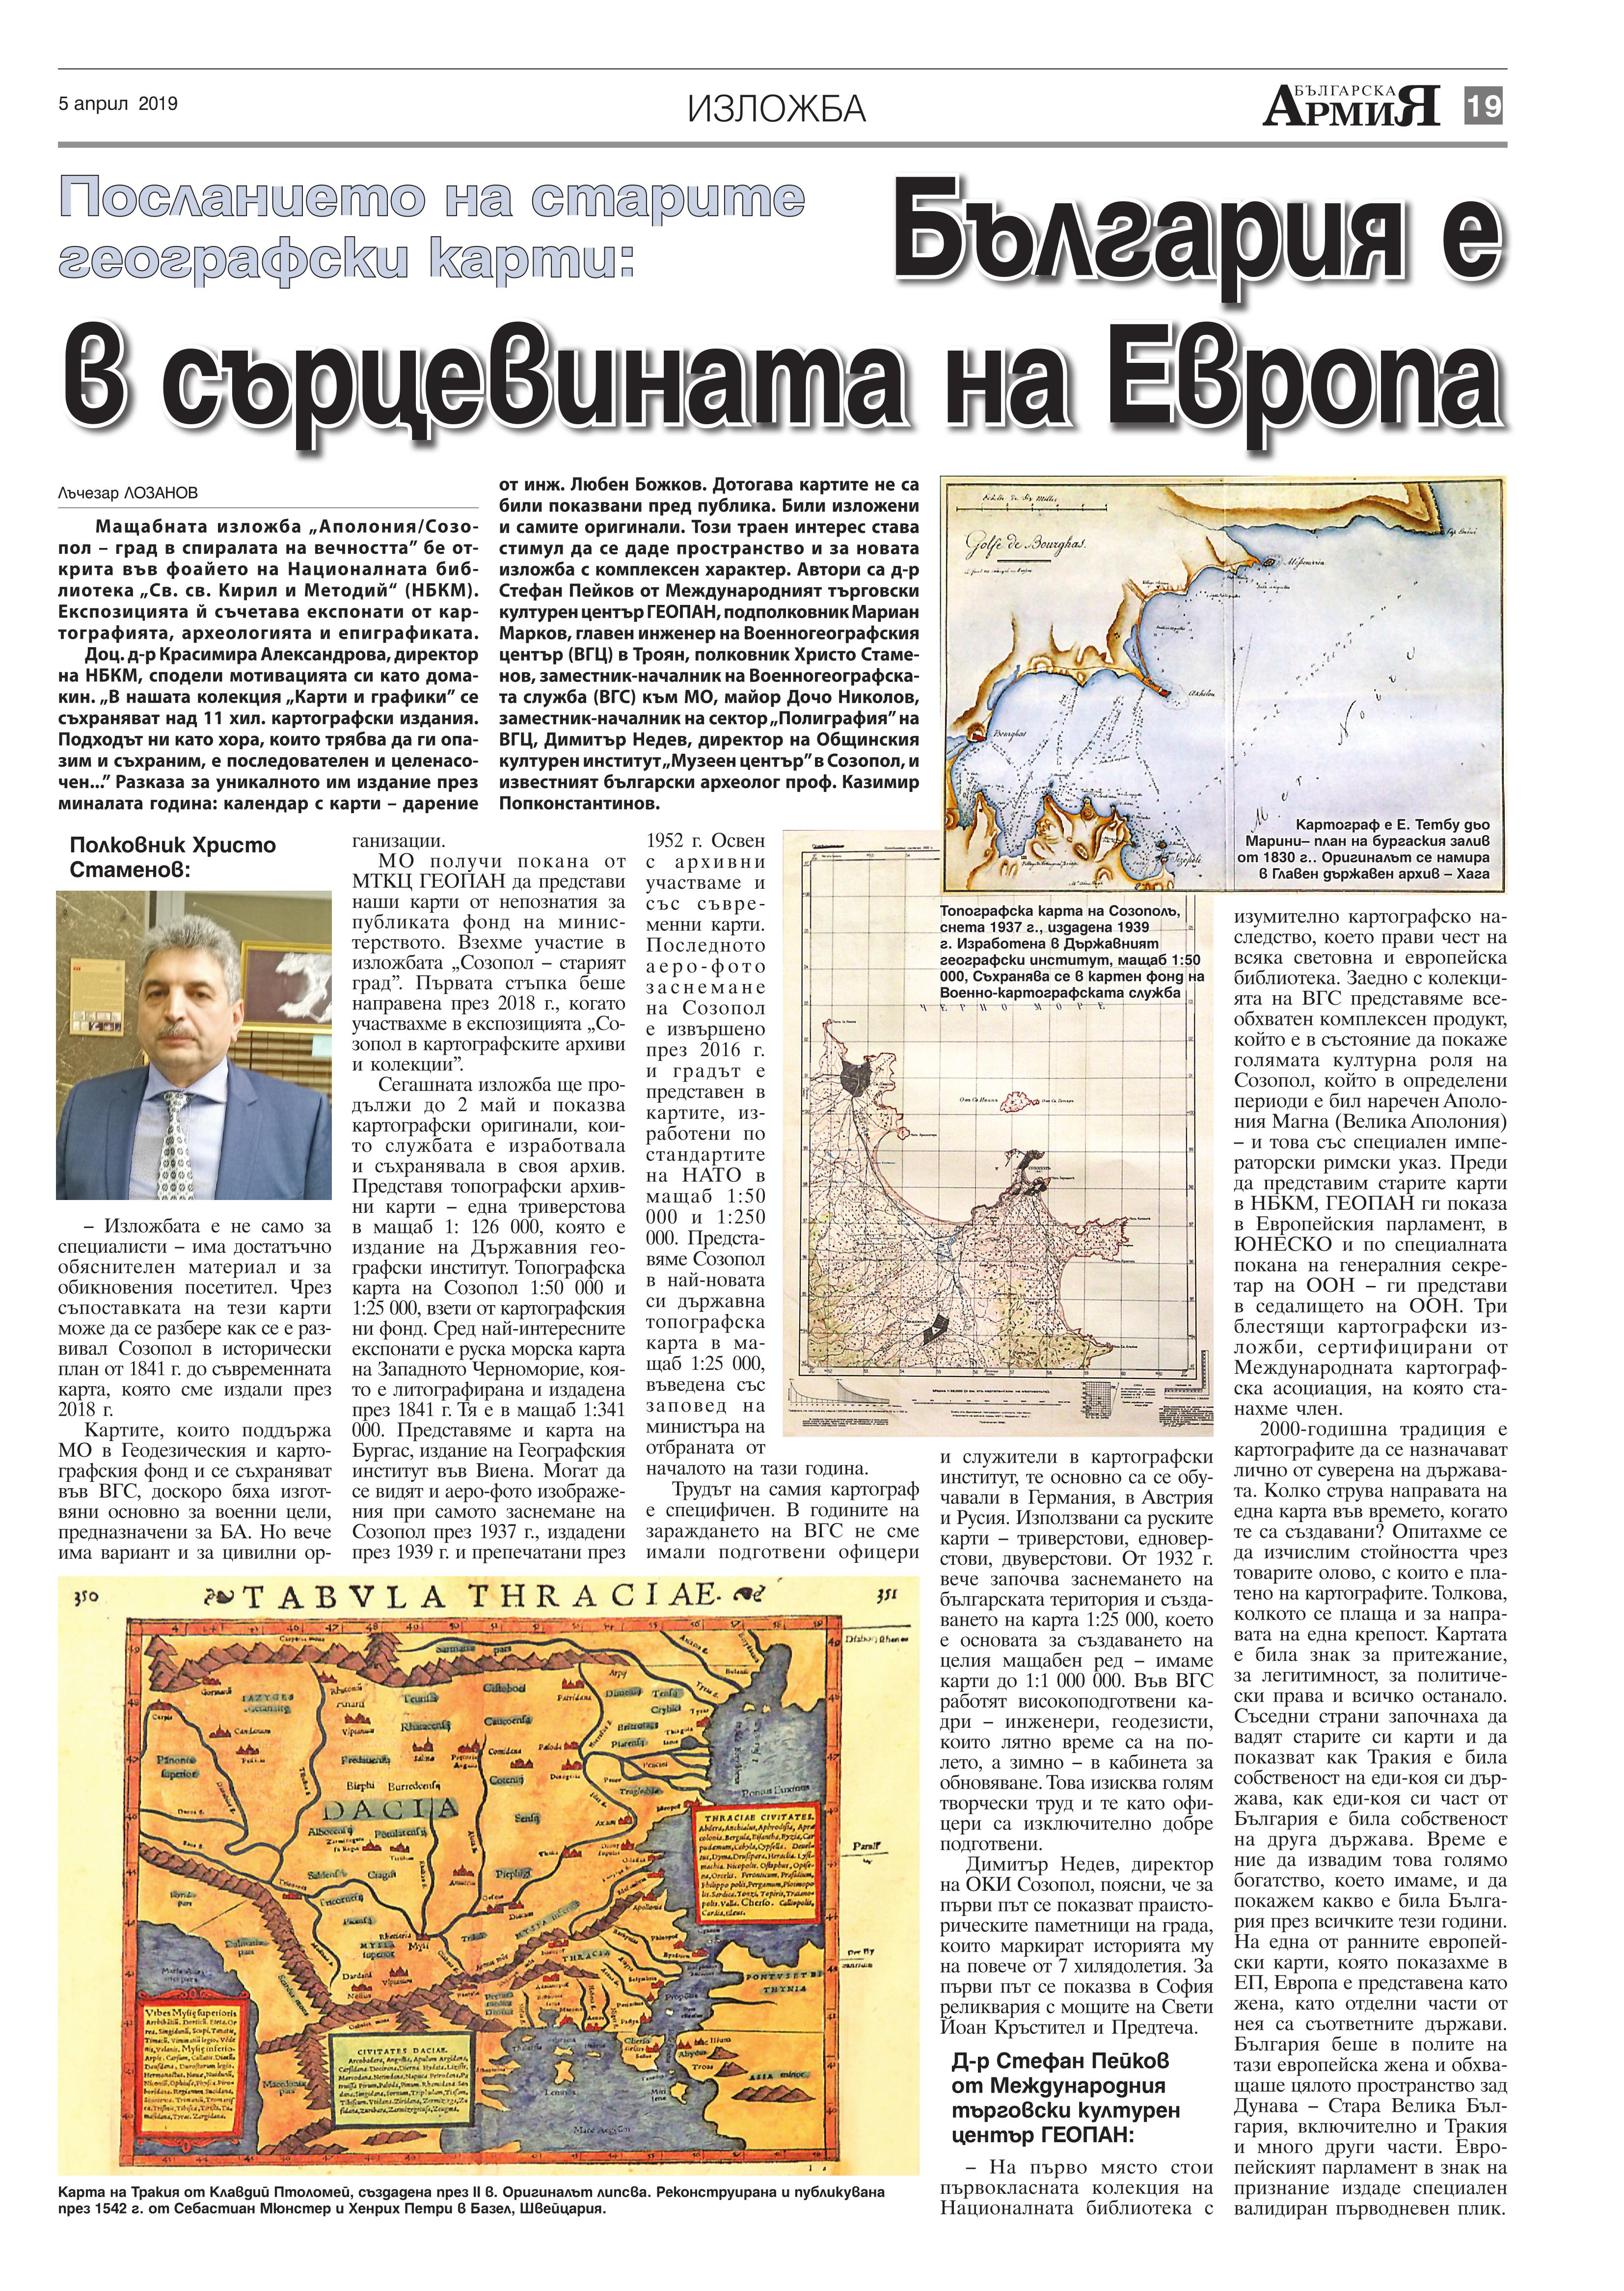 https://armymedia.bg/wp-content/uploads/2015/06/19.page1_-91.jpg